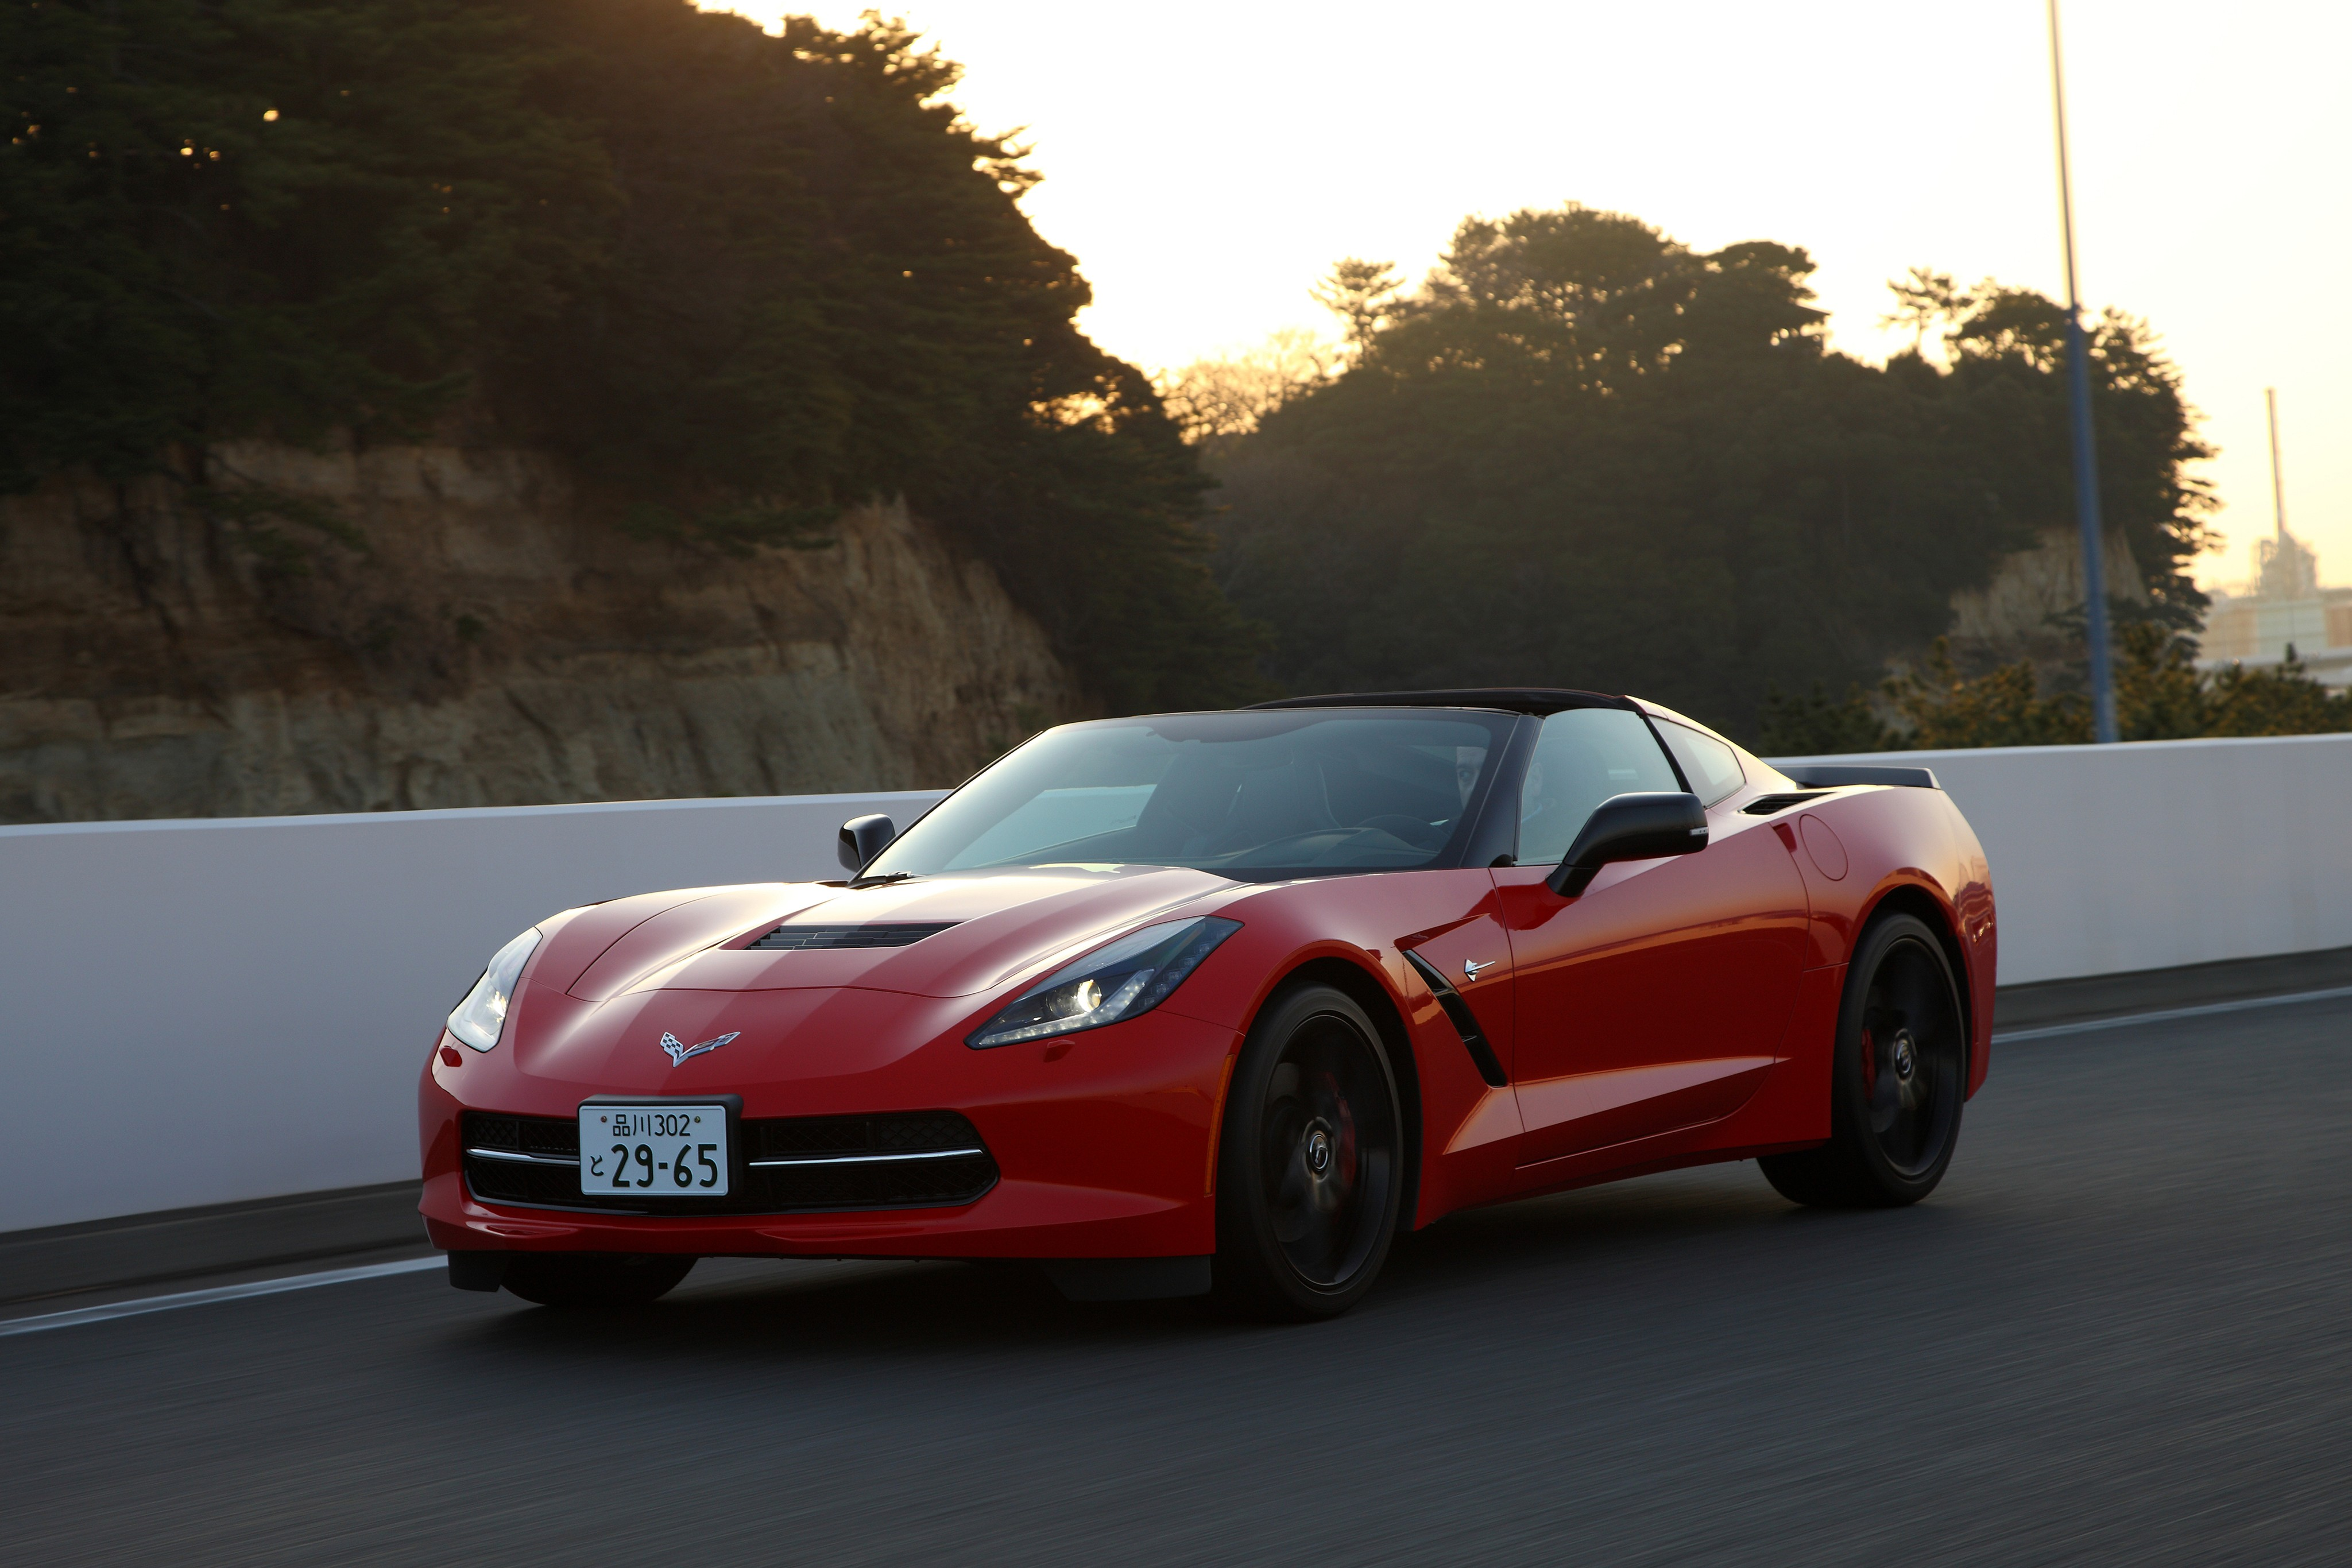 2019 Chevrolet Corvette C7 Stingray photo - 6